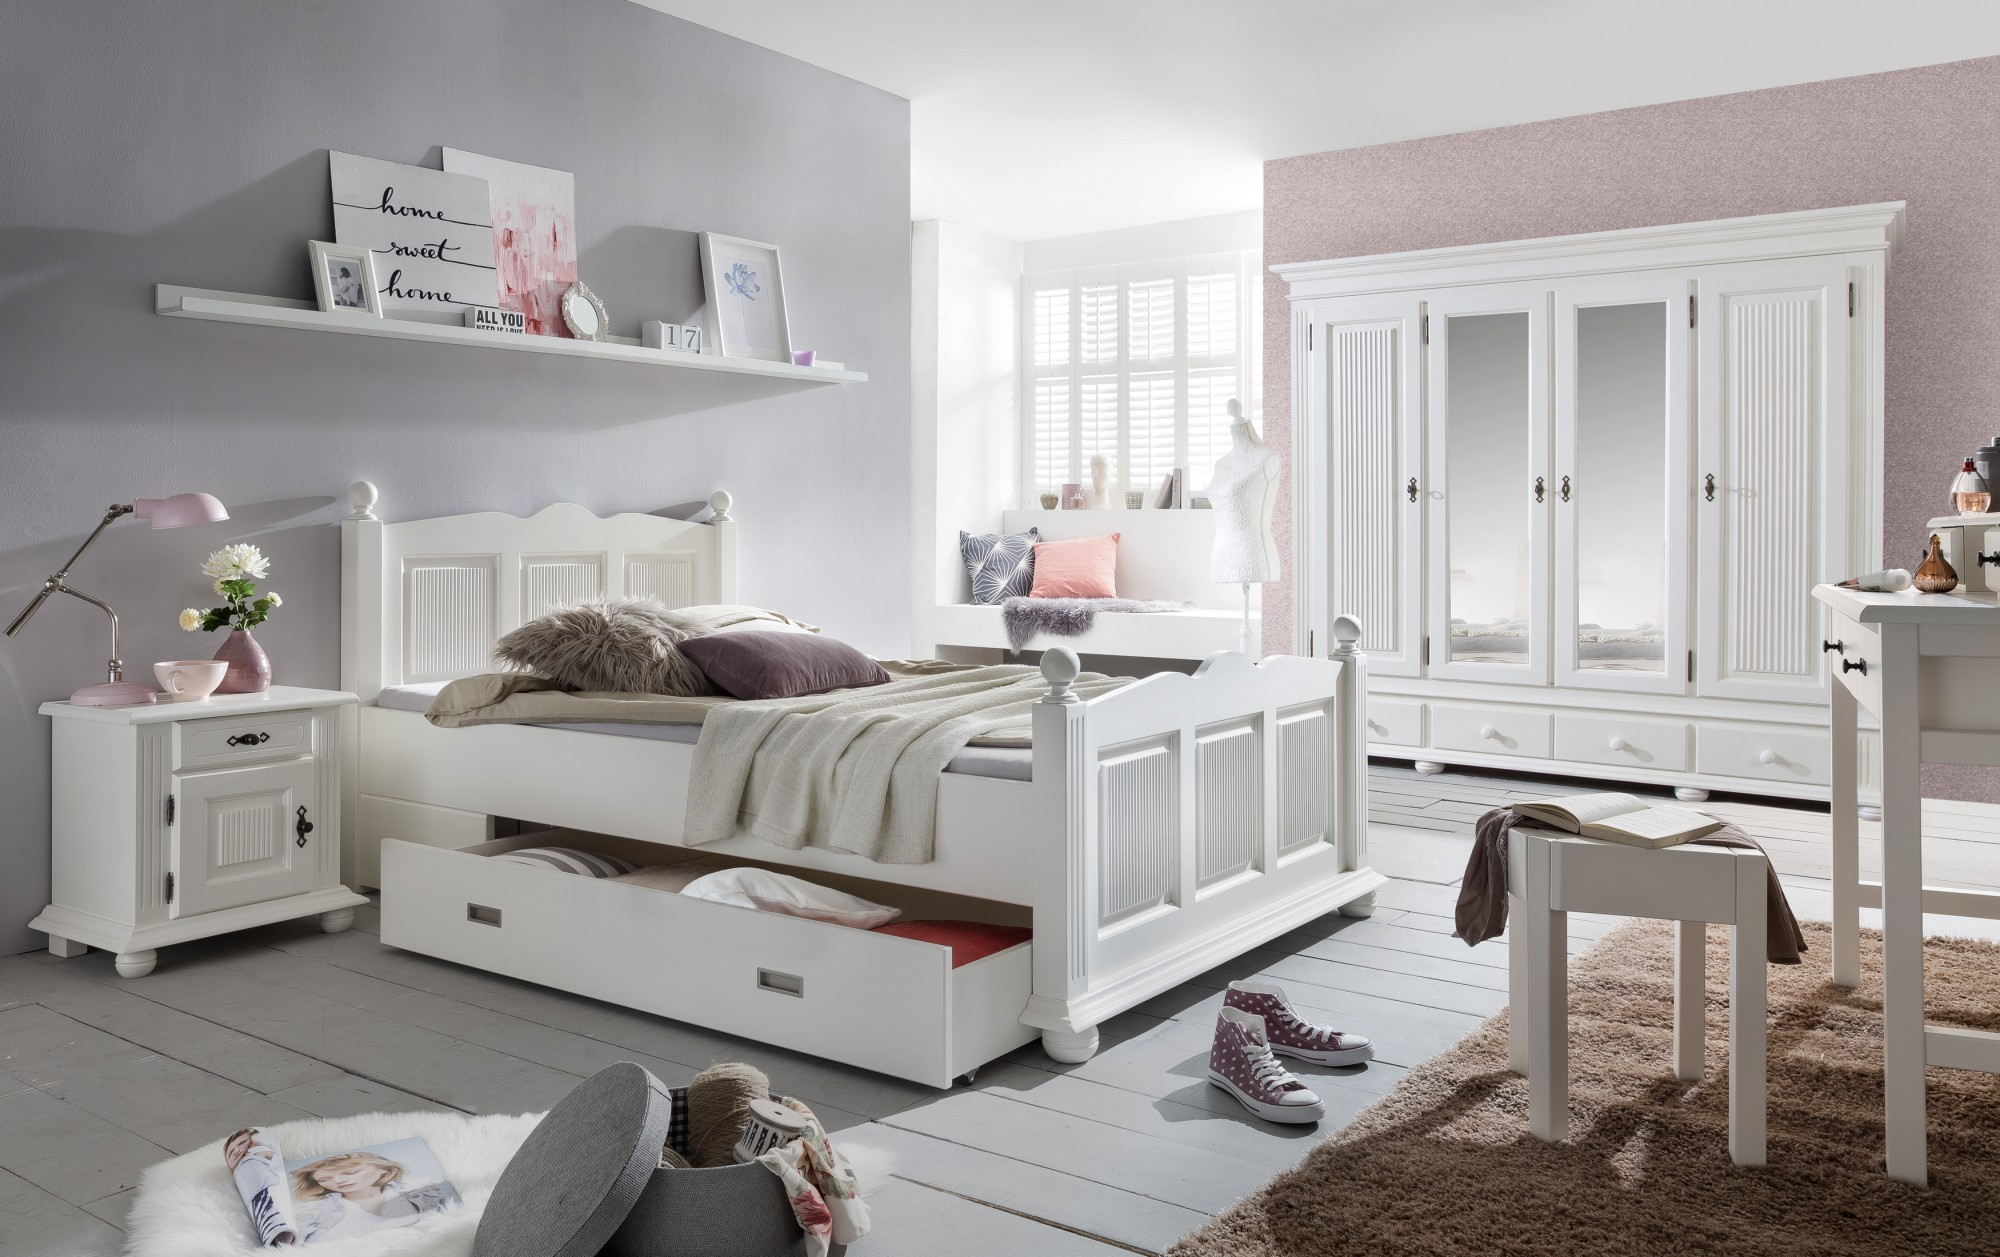 4 trg kleiderschrank freiburg spiegel massivholz weiss. Black Bedroom Furniture Sets. Home Design Ideas